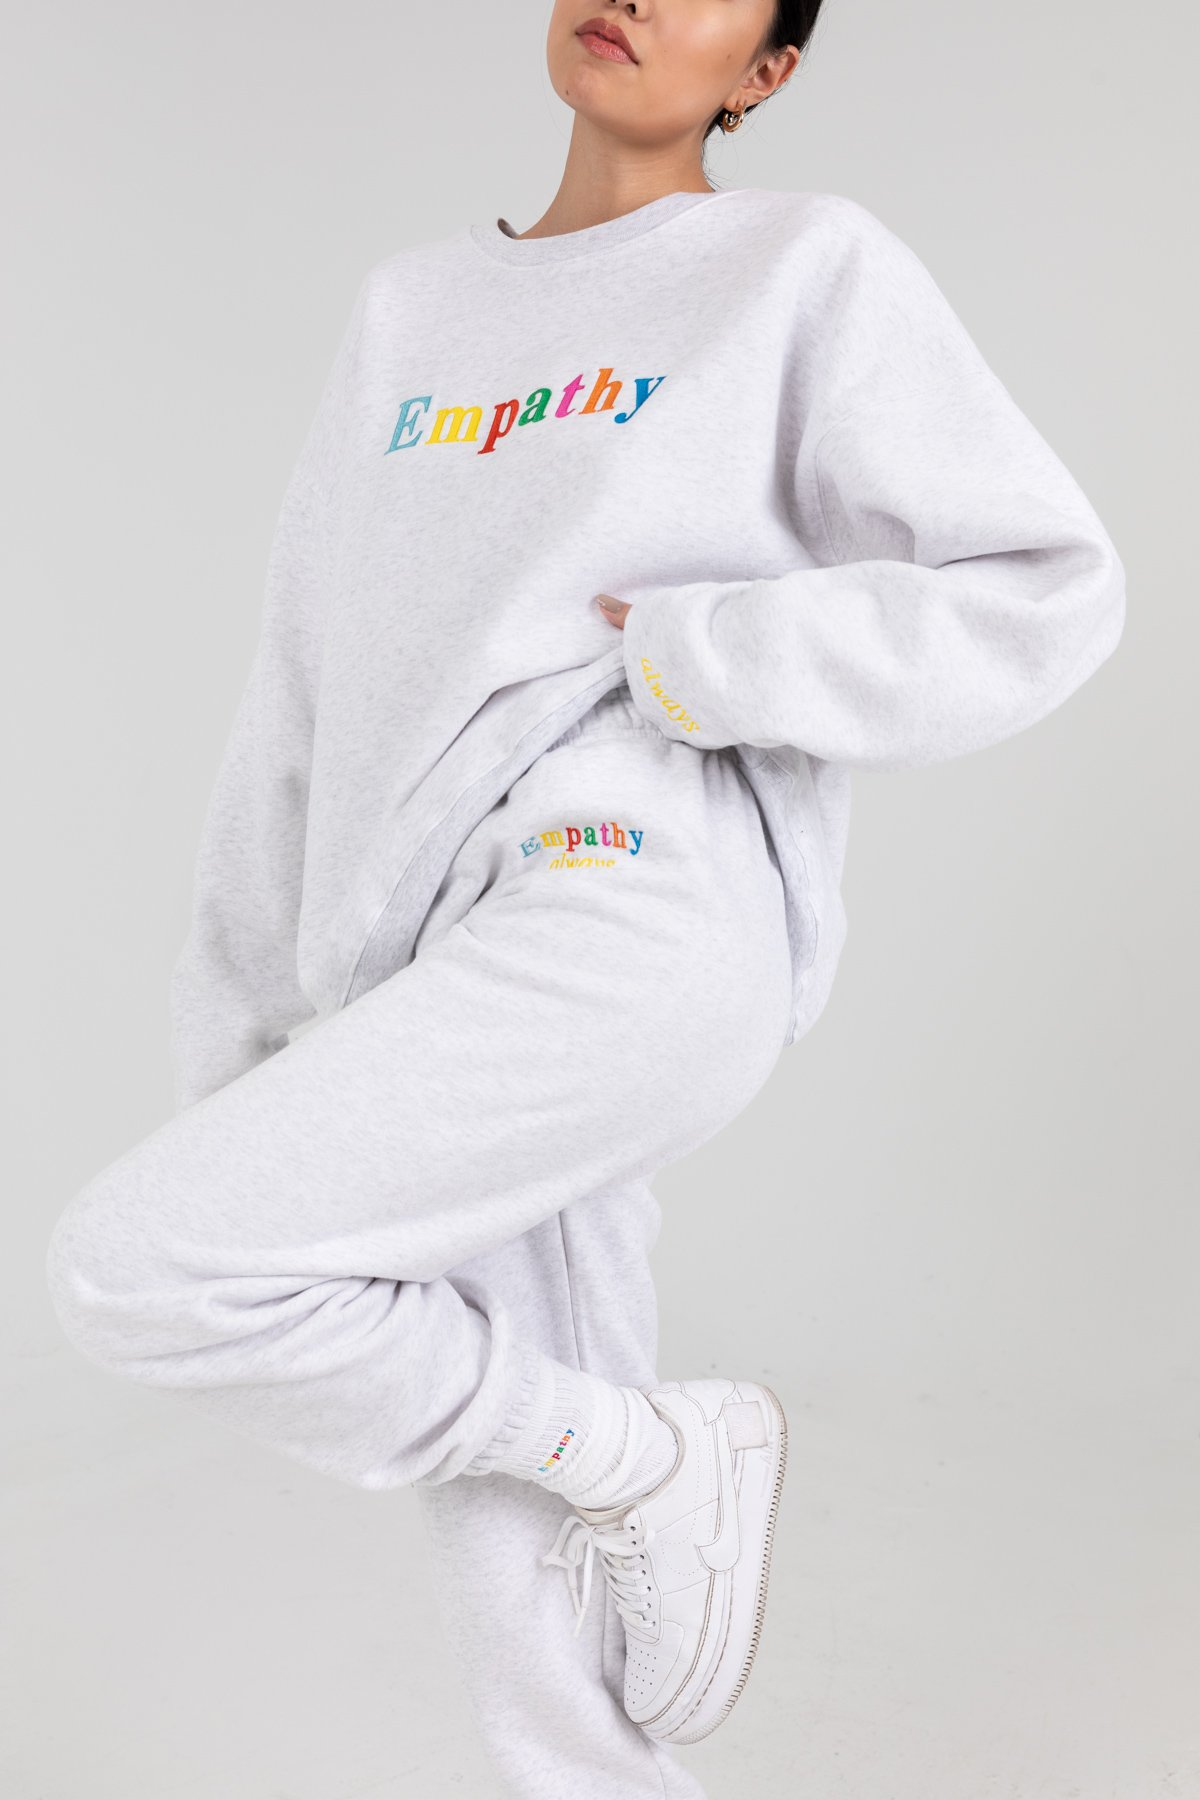 EMPATHY ALWAYS SWEATPANTS by The Mayfair Group, available on themayfairgroupllc.com for $68 Taylor Hill Pants Exact Product